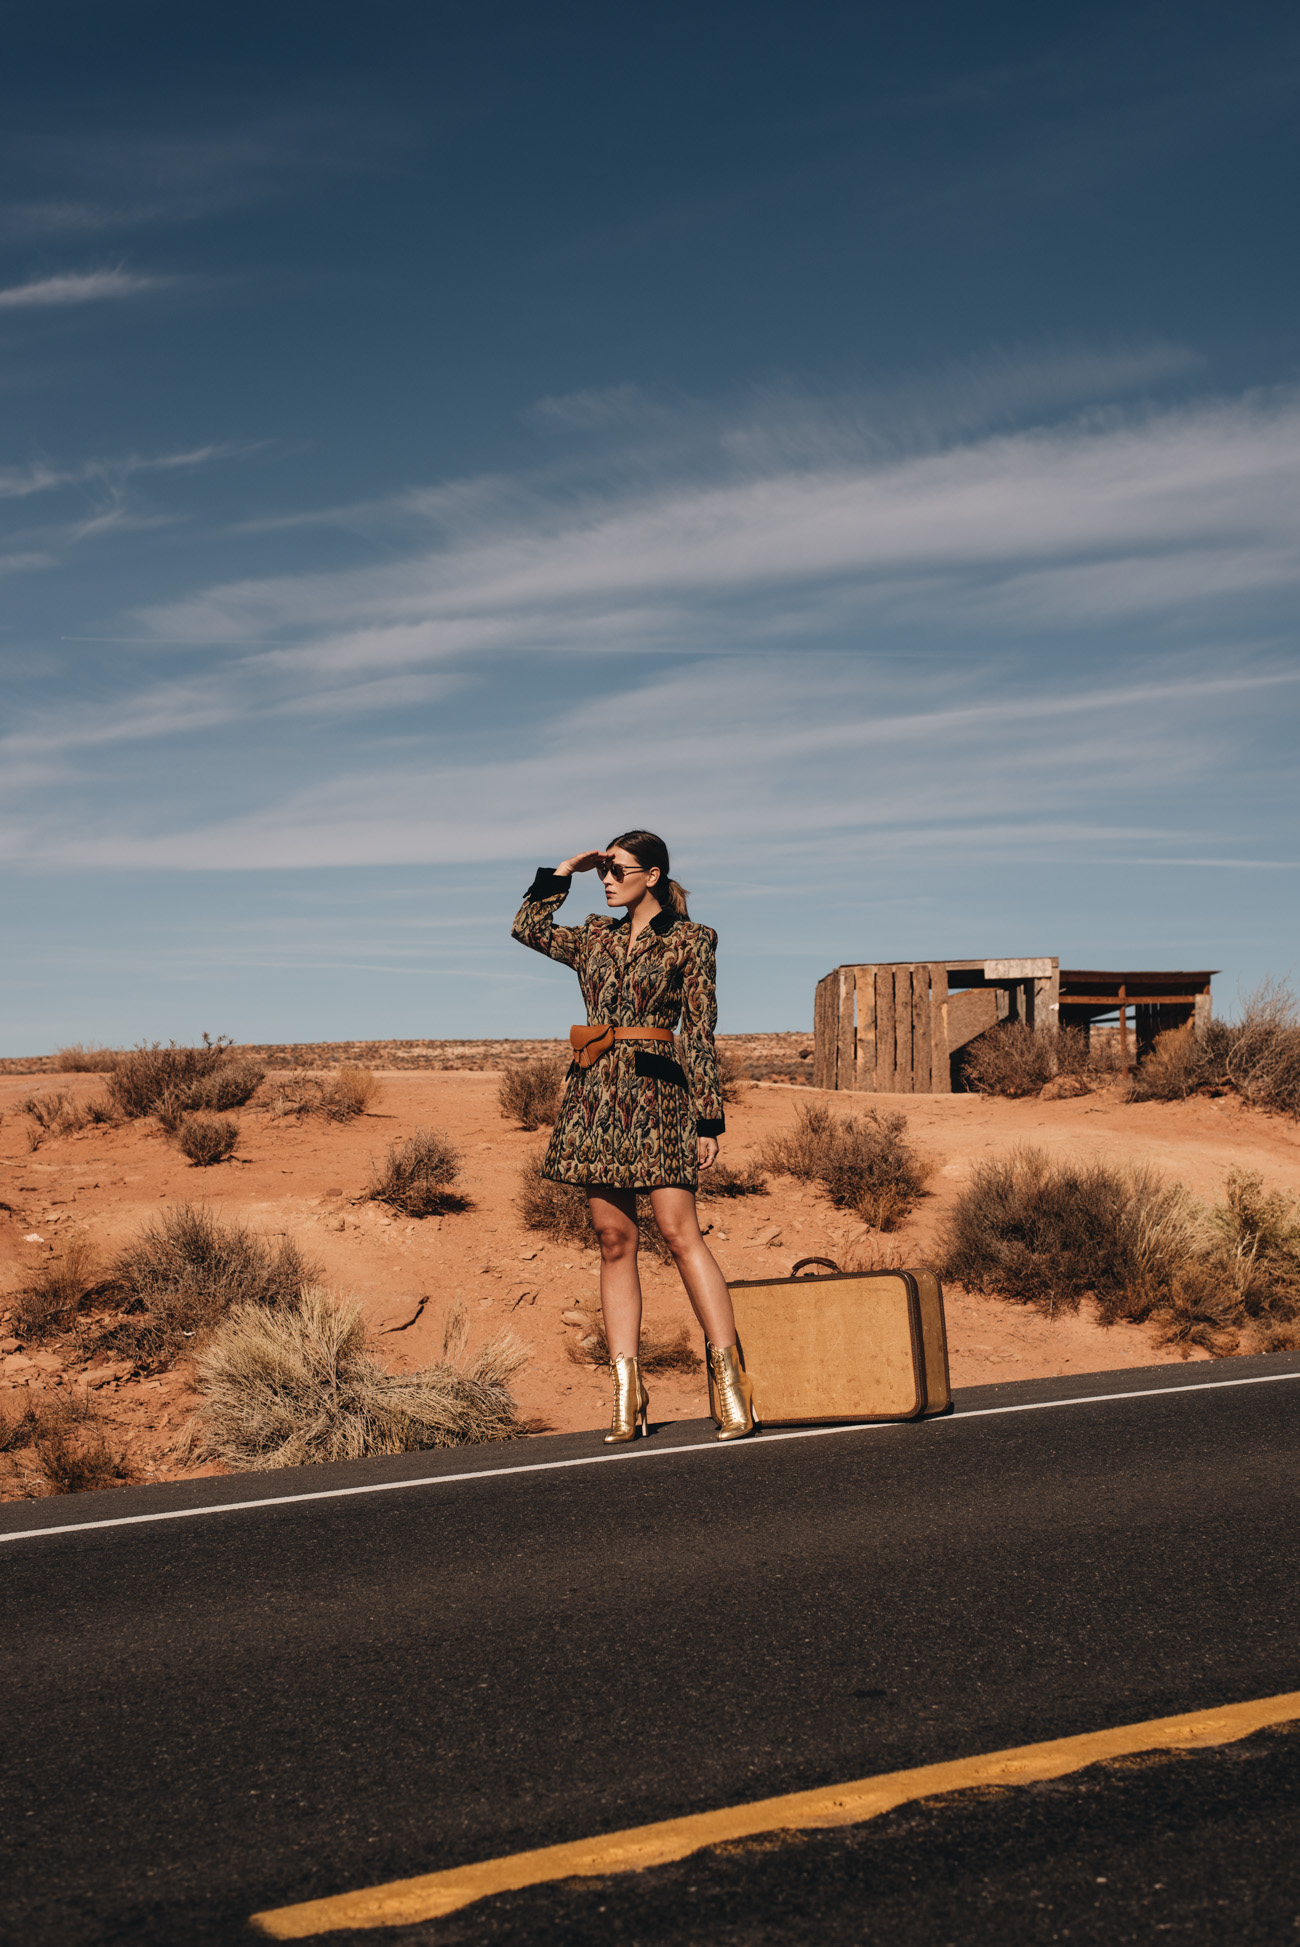 Highway-Luxus-Fotoshooting-Mode-Foto-shooting-wüste-monument-valley-kalifornien-outdoor-fashion-editorial-shooting-mode-bloggerin-fashionbloggerin-fashiioncarpet-nina-schwichtenberg